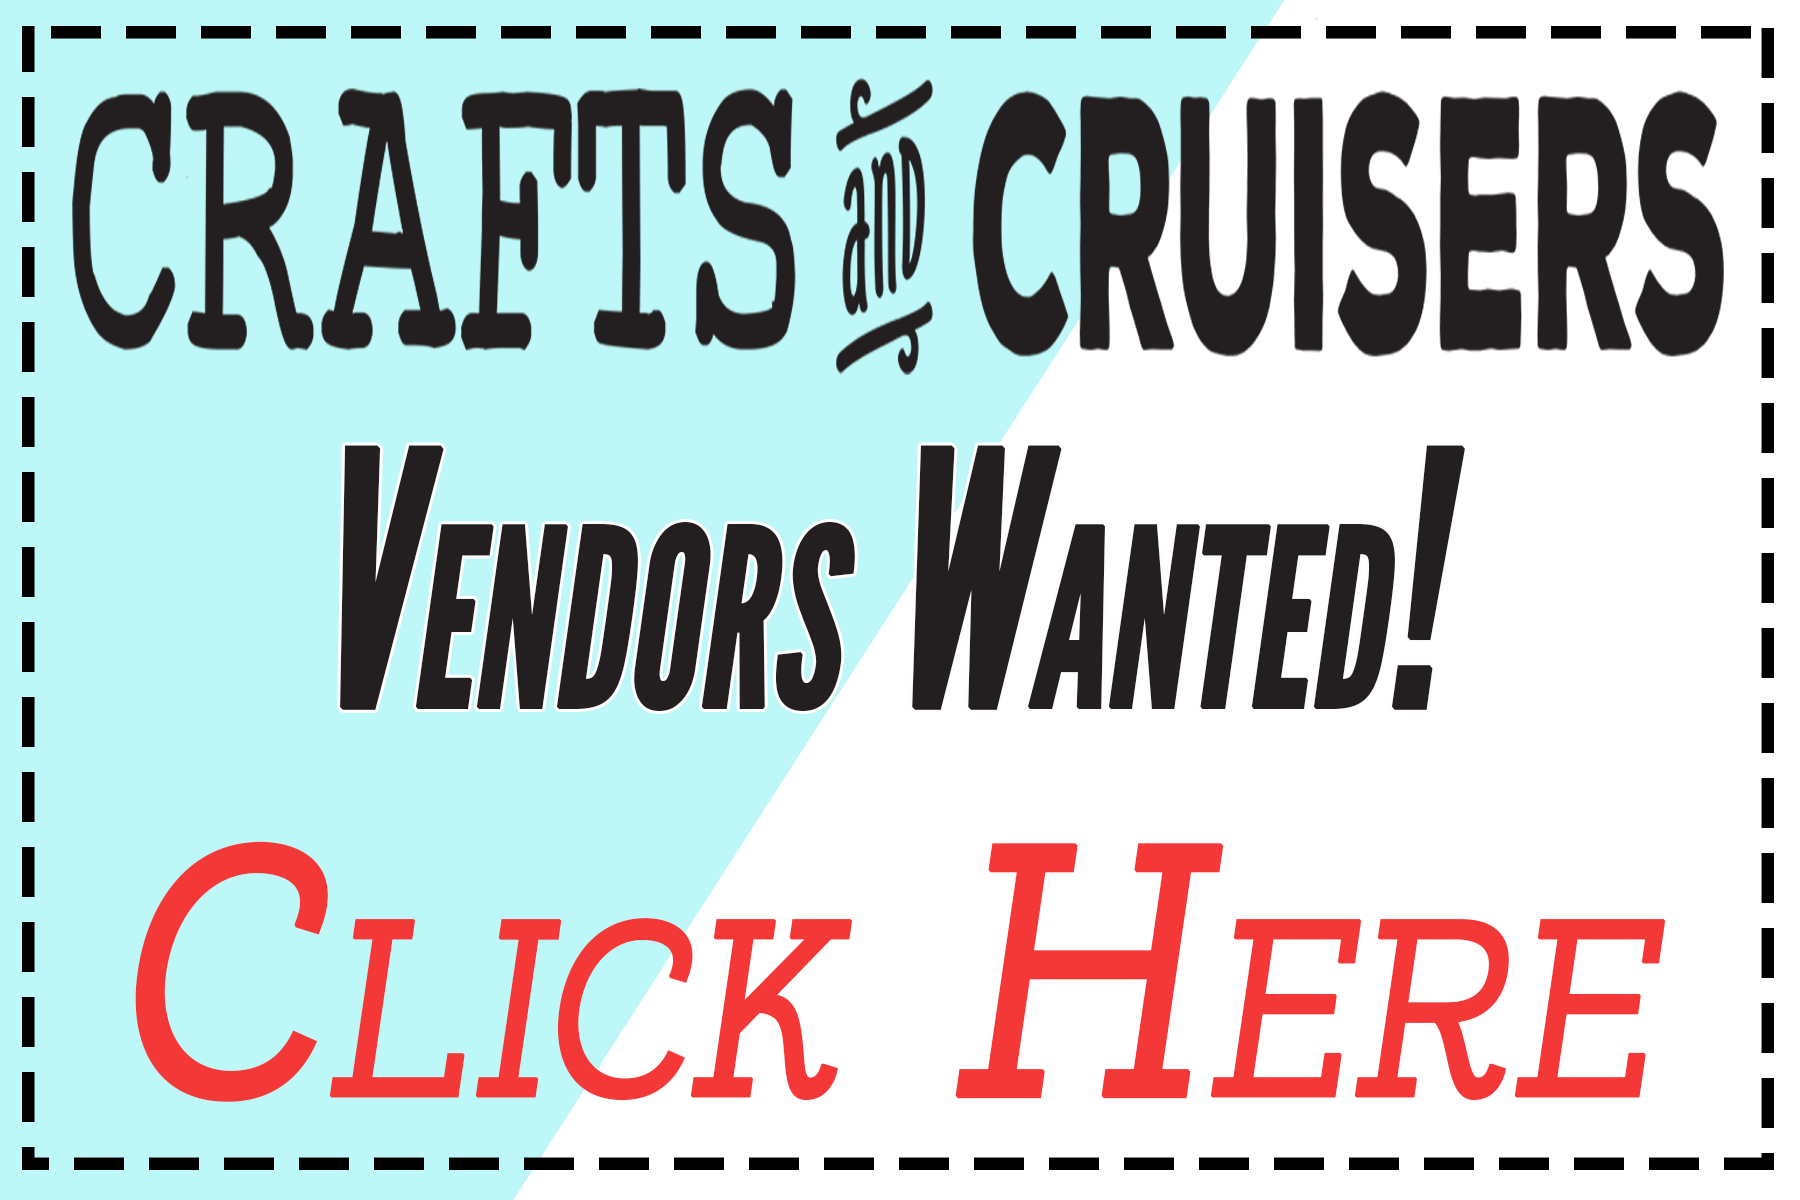 Crafts CruisersWebDisplay copy